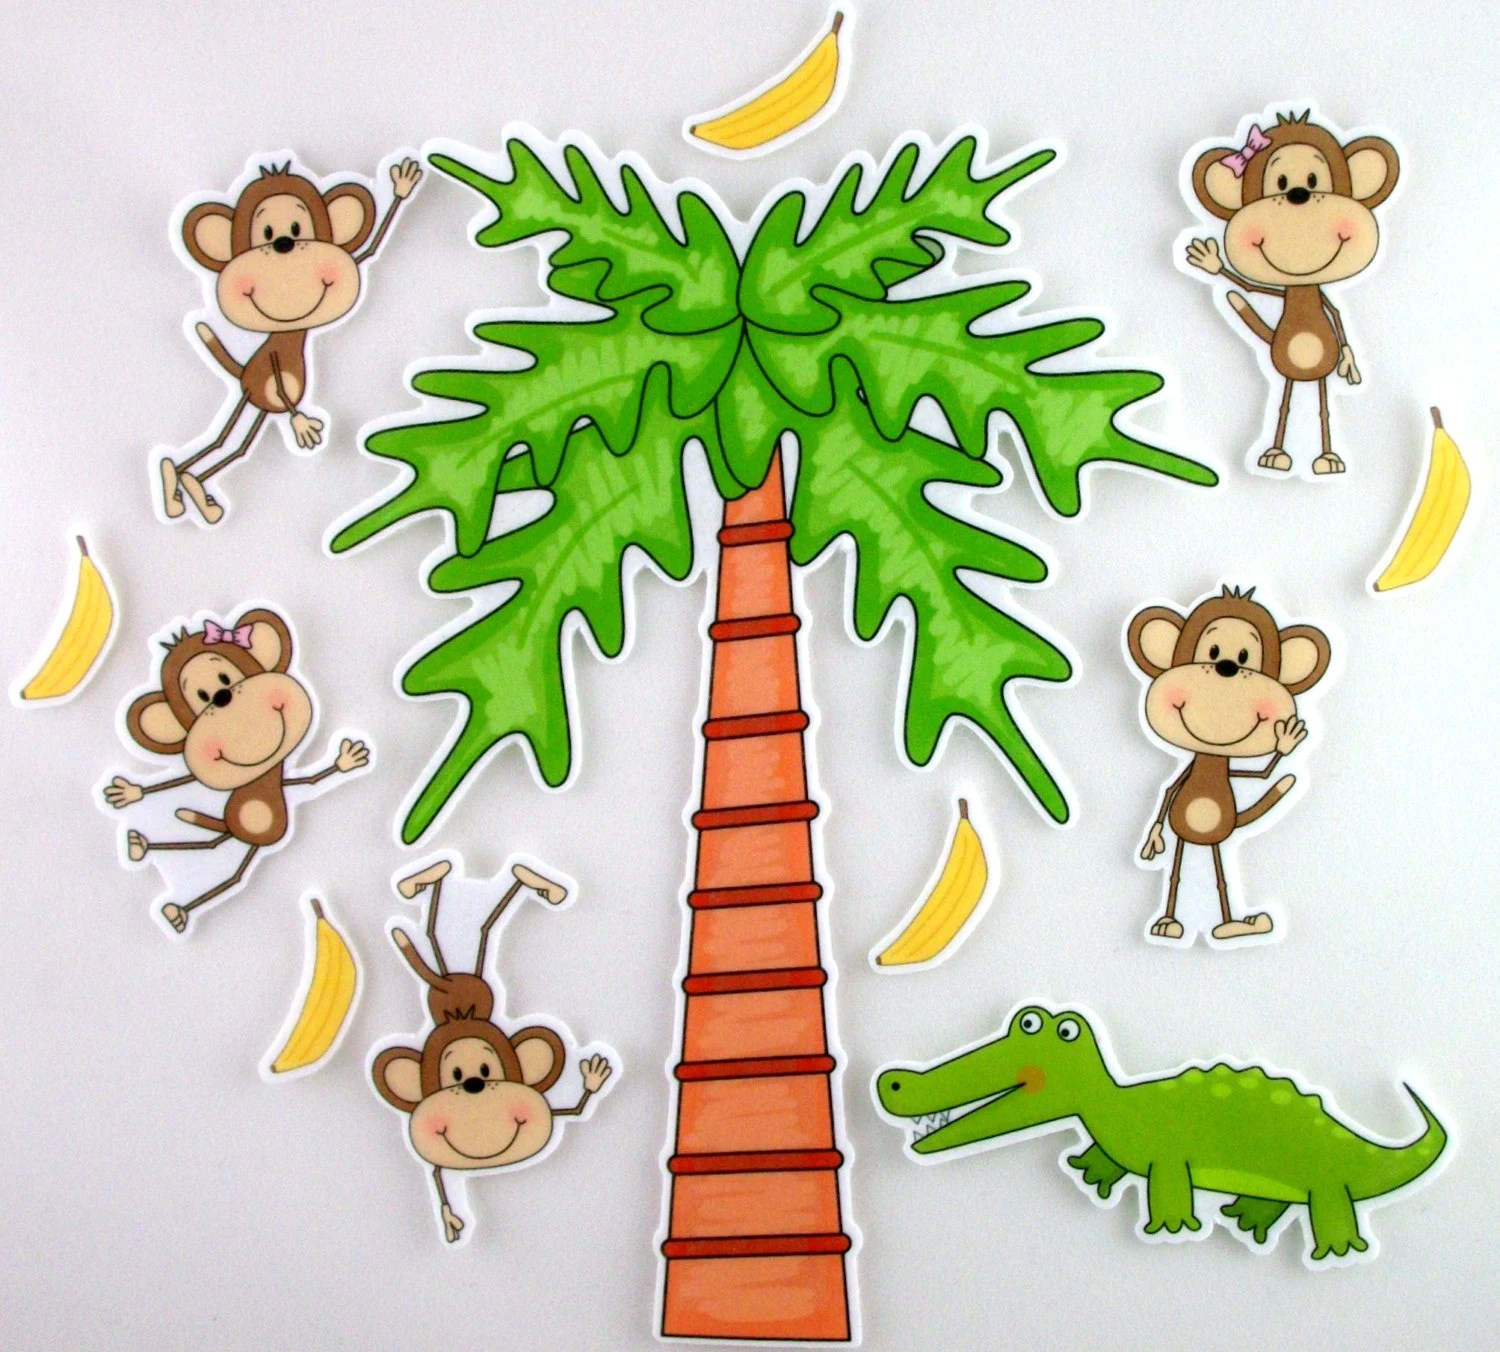 Five Little Monkeys Swinging From A Tree Felt Board By Bymaree